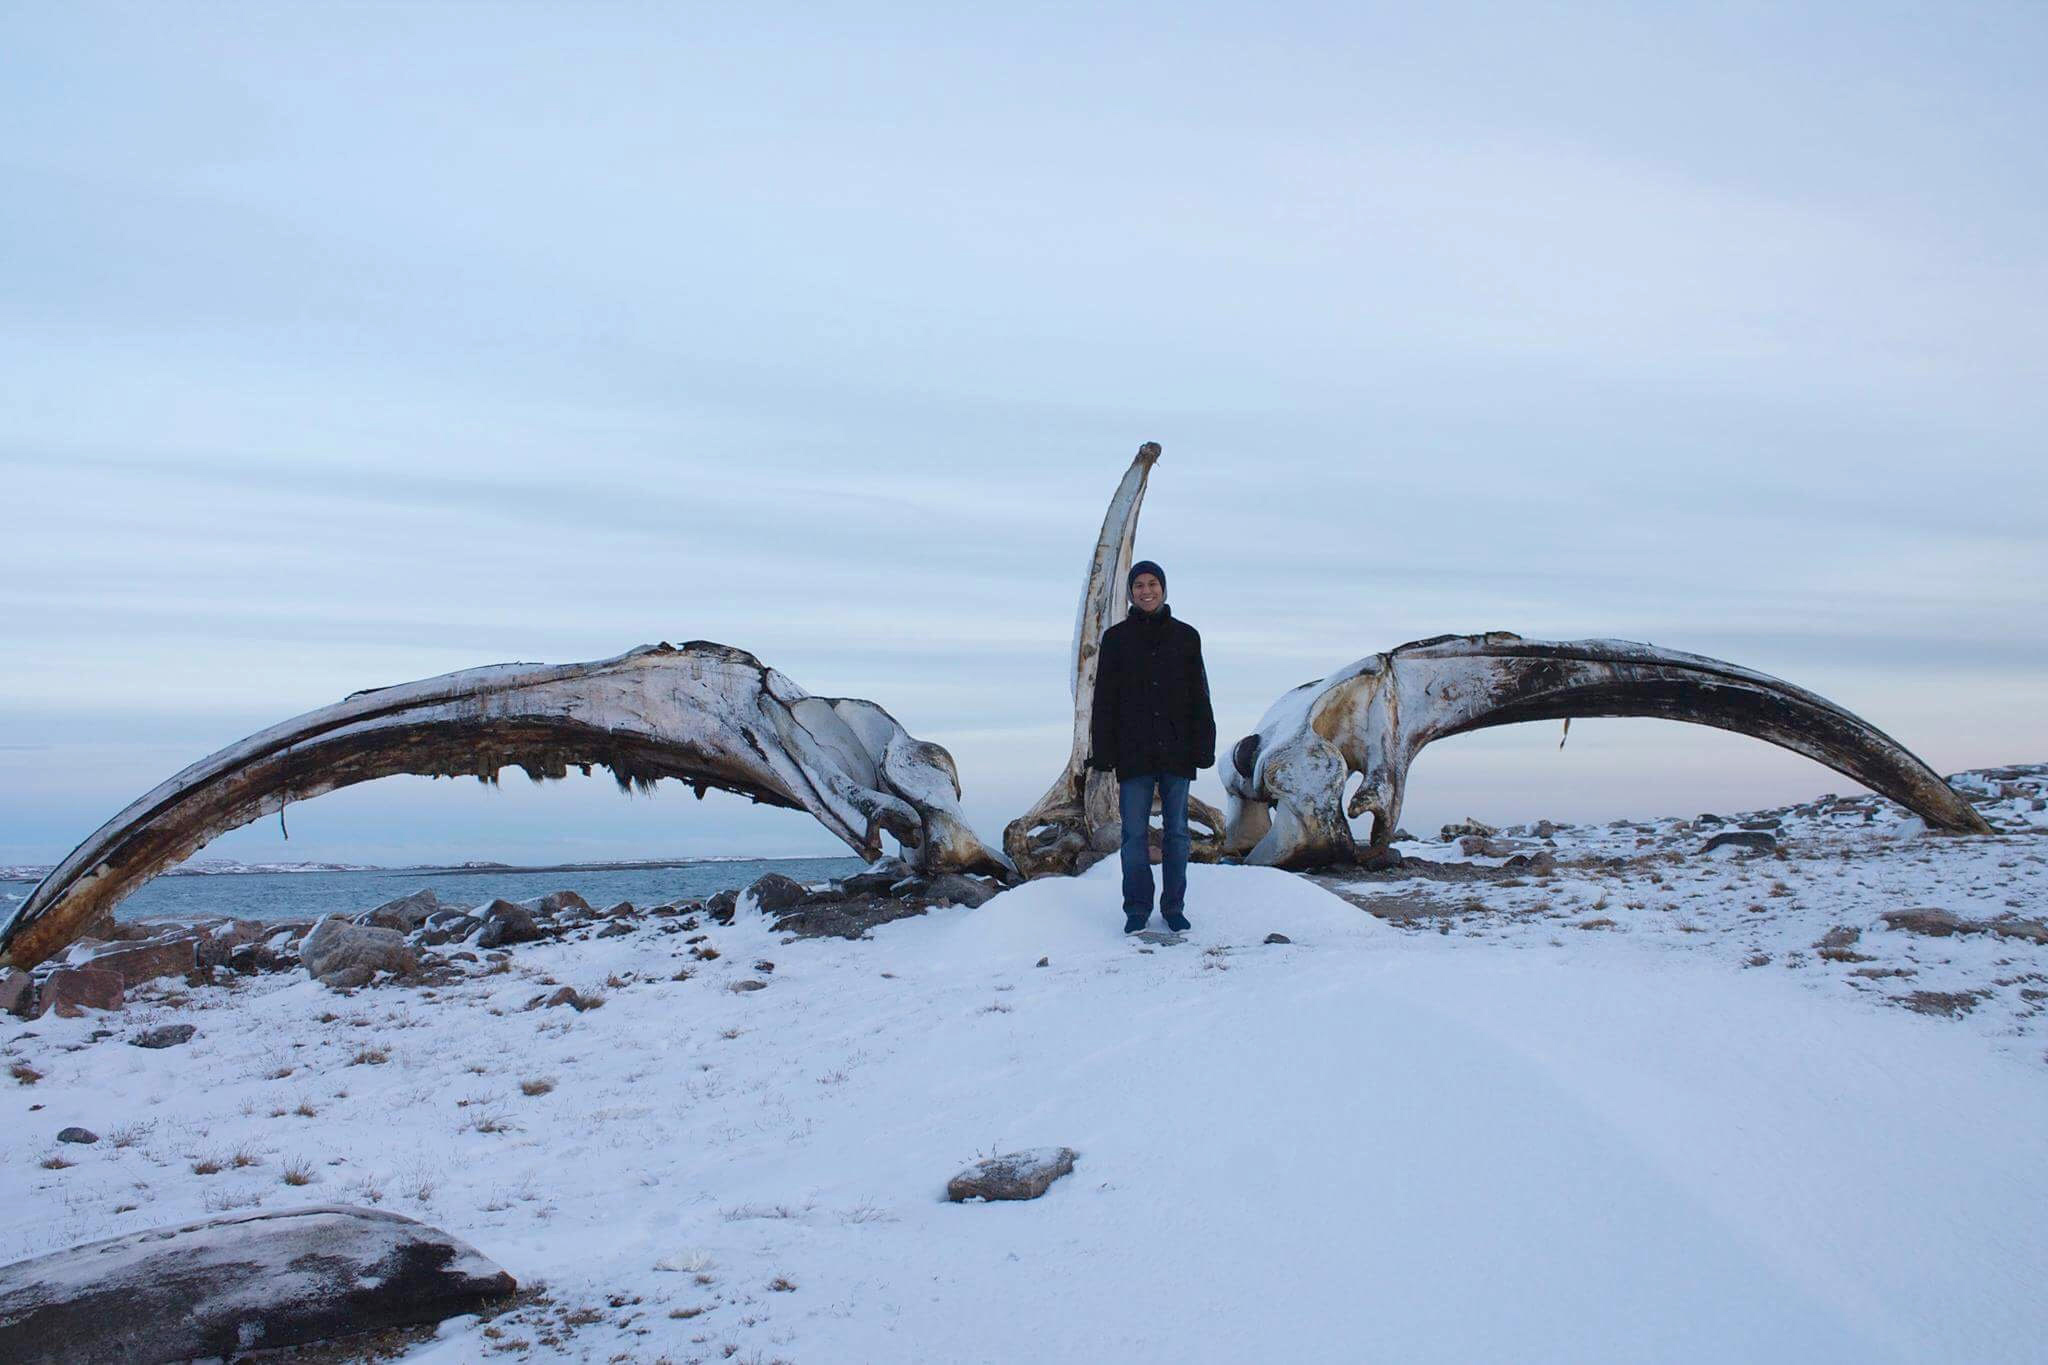 Alex Angnaluak stands in front of a bowhead whale jaw on a visit to Naujaat last year. (HANDOUT PHOTO)